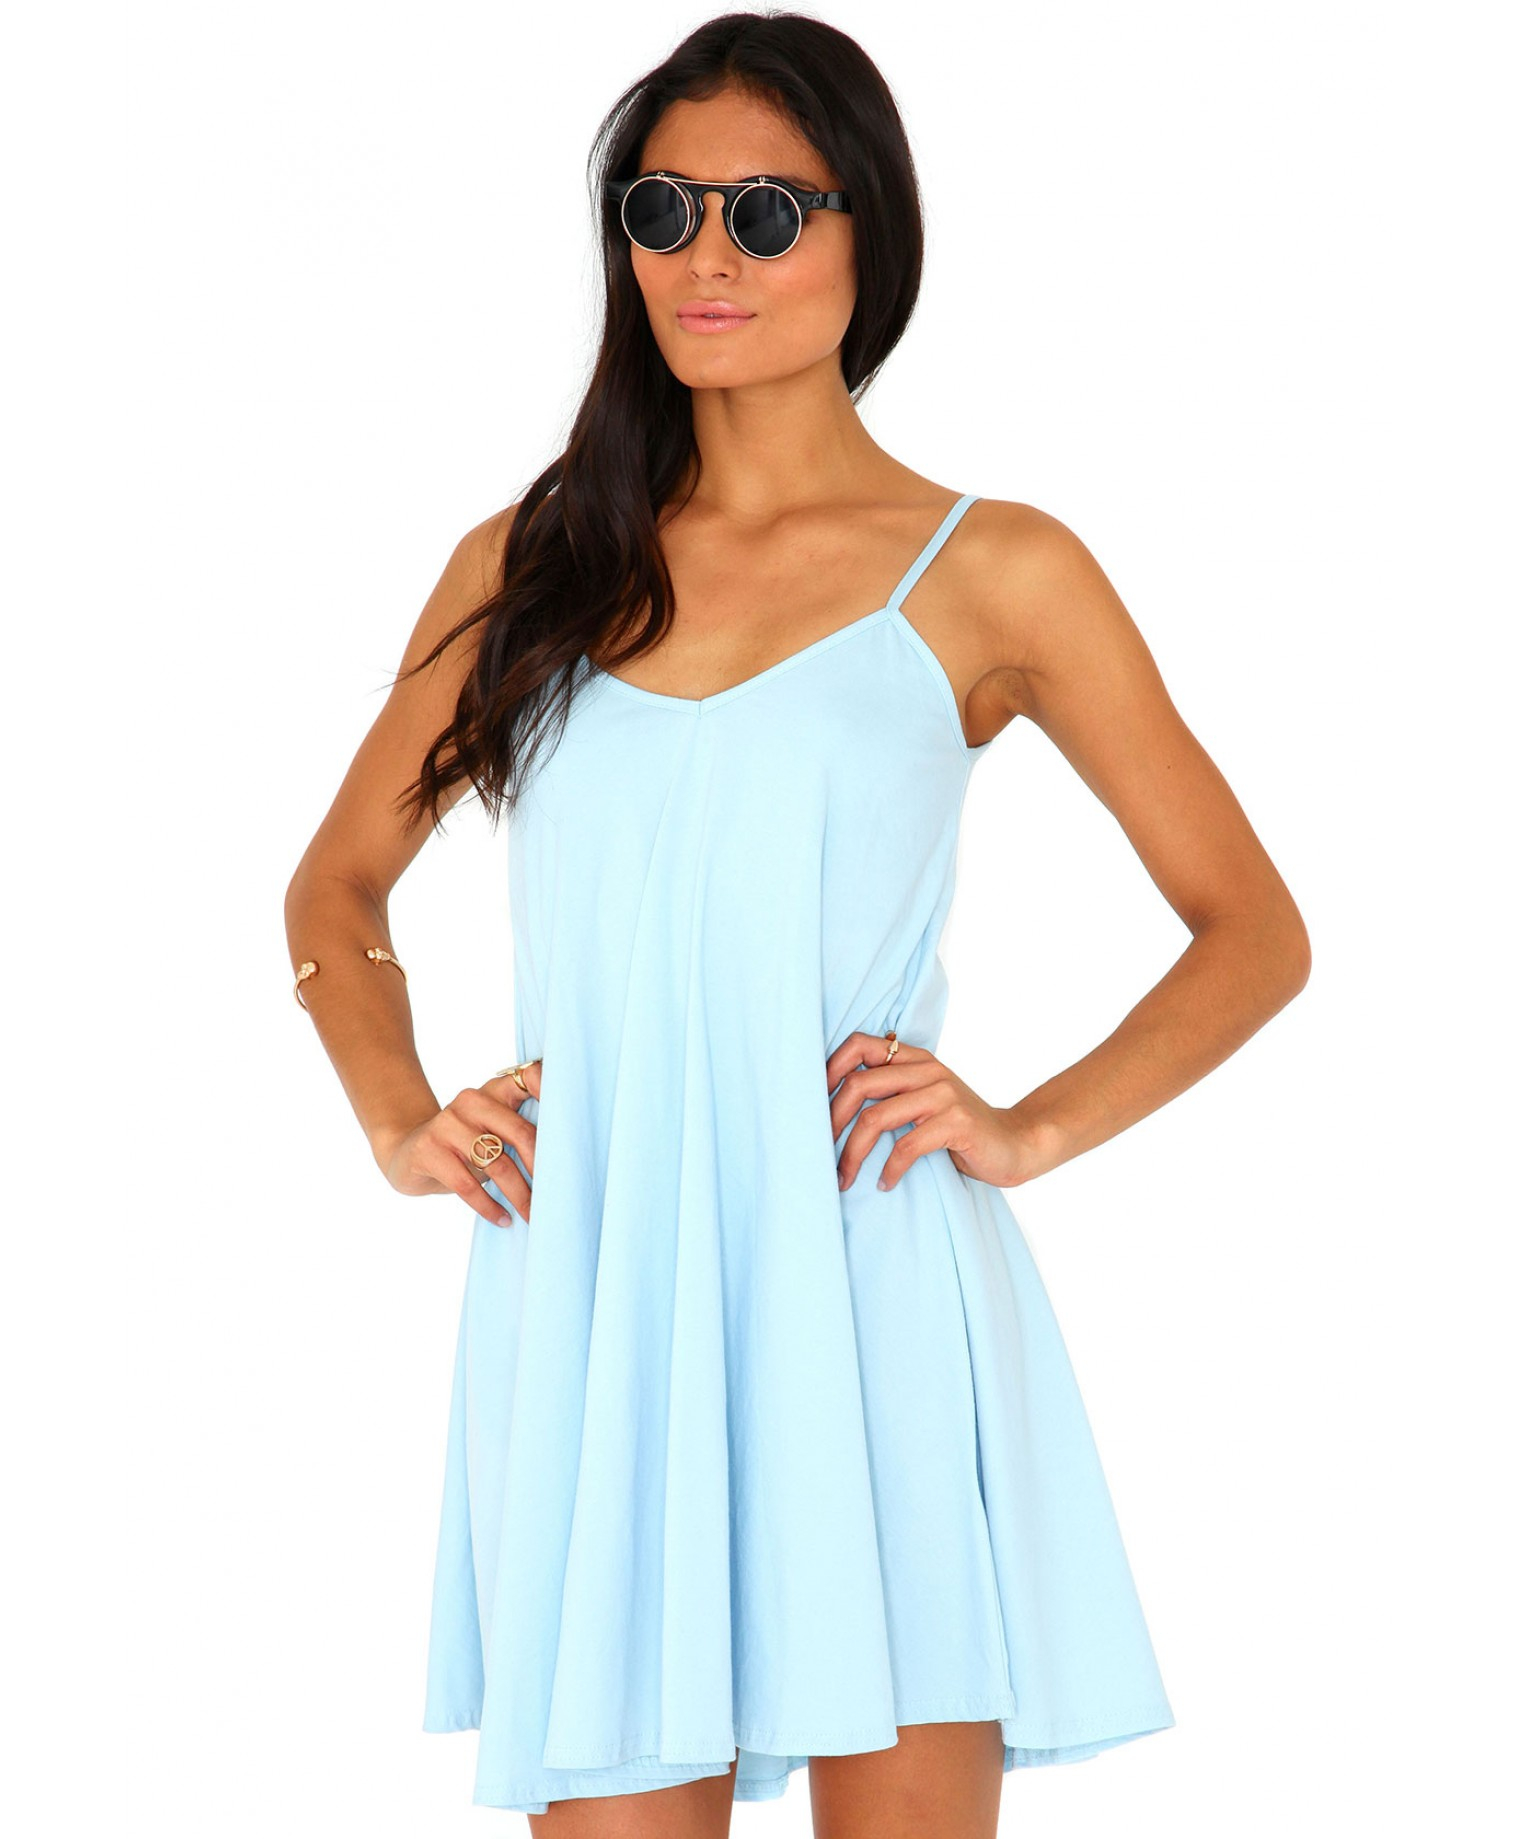 f7d50adb3b7 Lyst - Missguided Dayla Oversized Swing Dress in Baby Blue in Blue